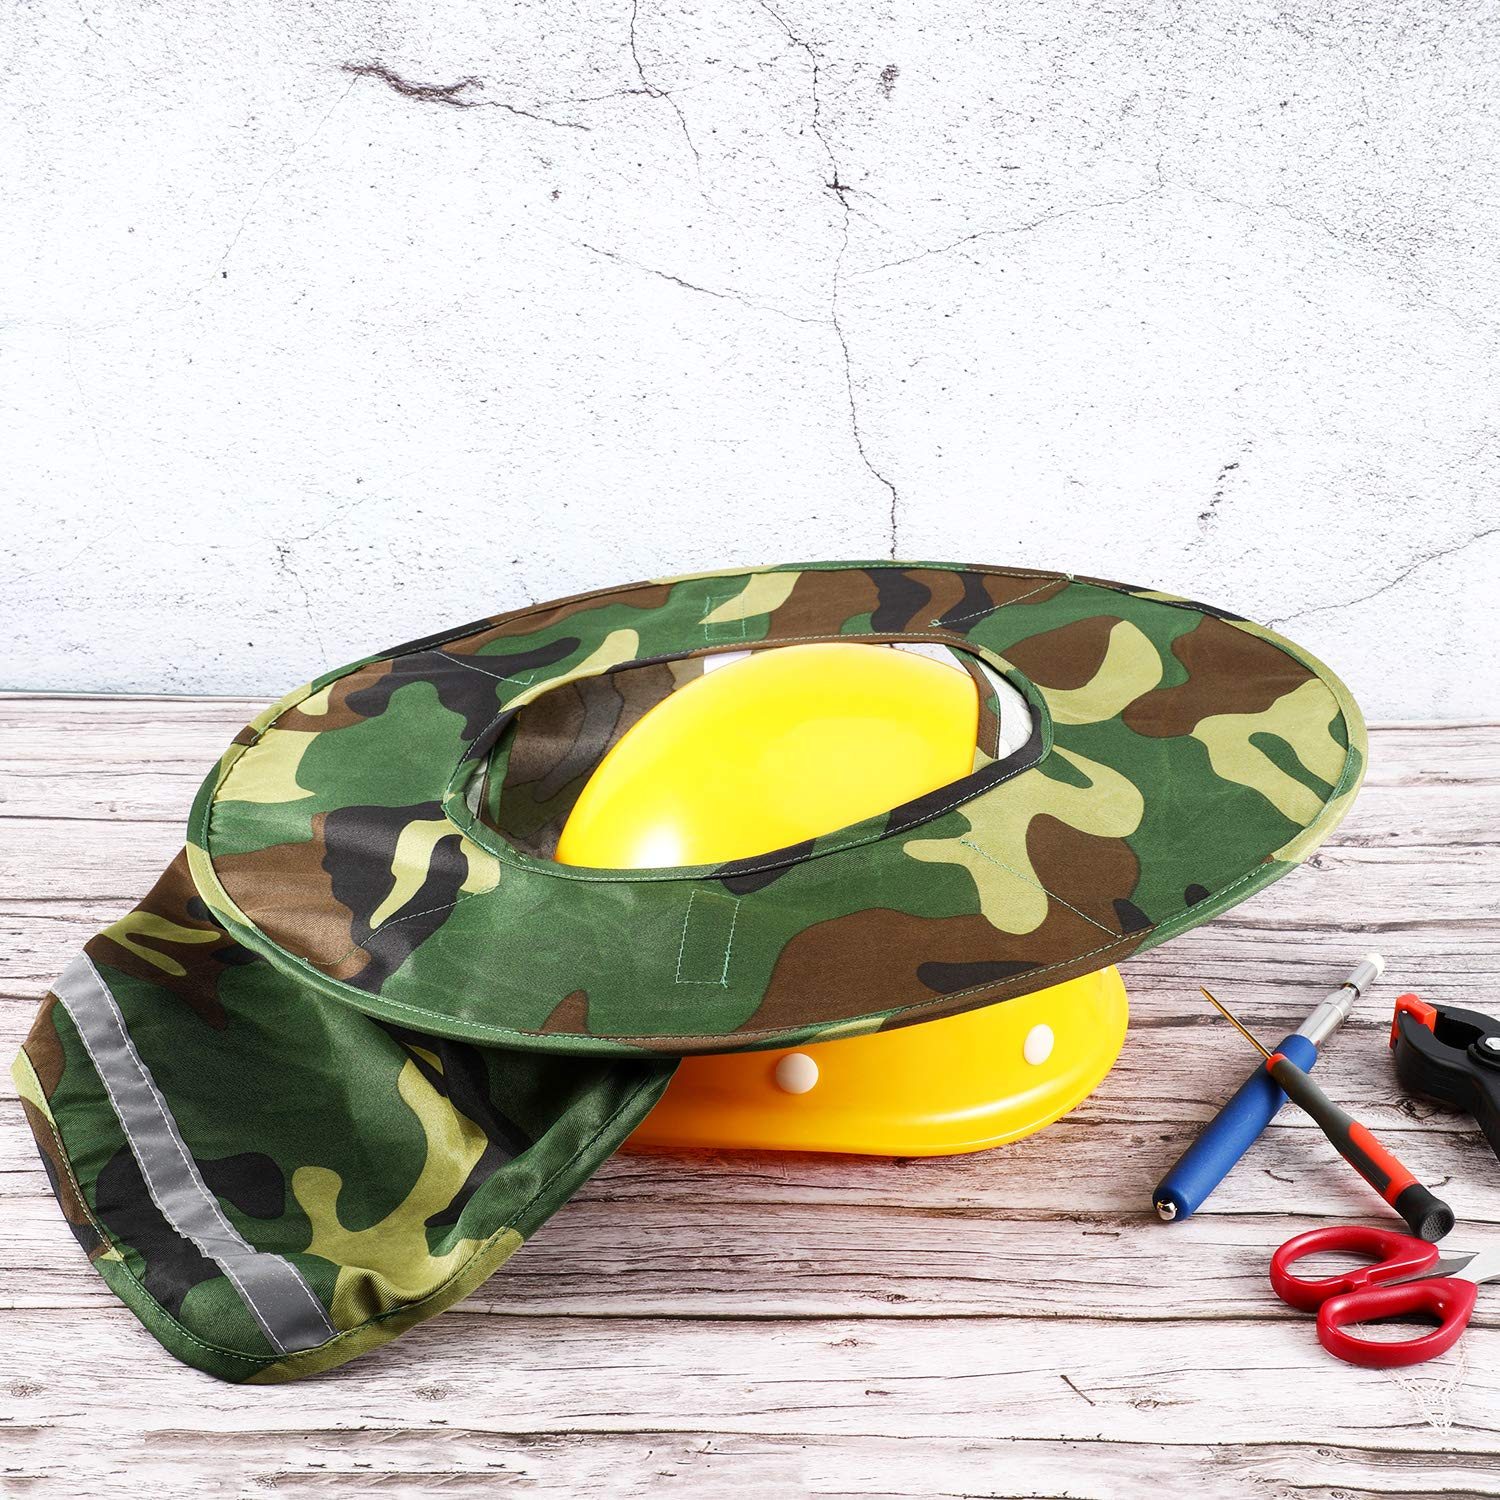 Jovitec 2 Pieces Helmet Sun Shade Hard Hat Sun Neck Shield with Full Brim, Reflective Stripe, Adhesive Hook for Safety Helmet (Camouflage) by Jovitec (Image #3)